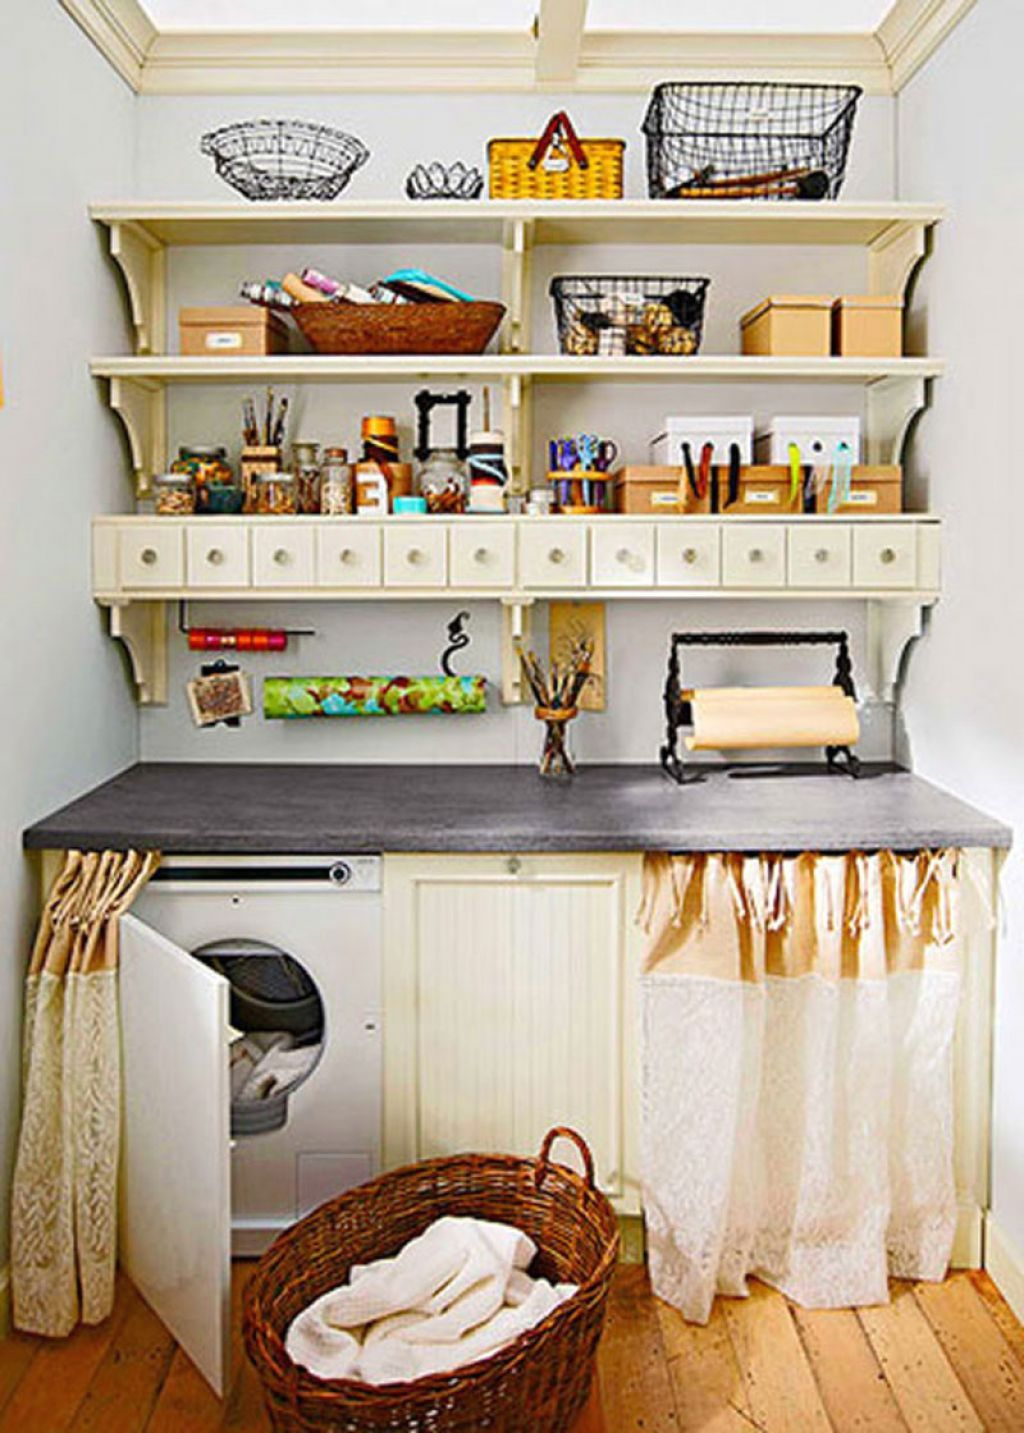 20 briliant small laundry room storage solutions - Kitchen storage solutions for small spaces concept ...